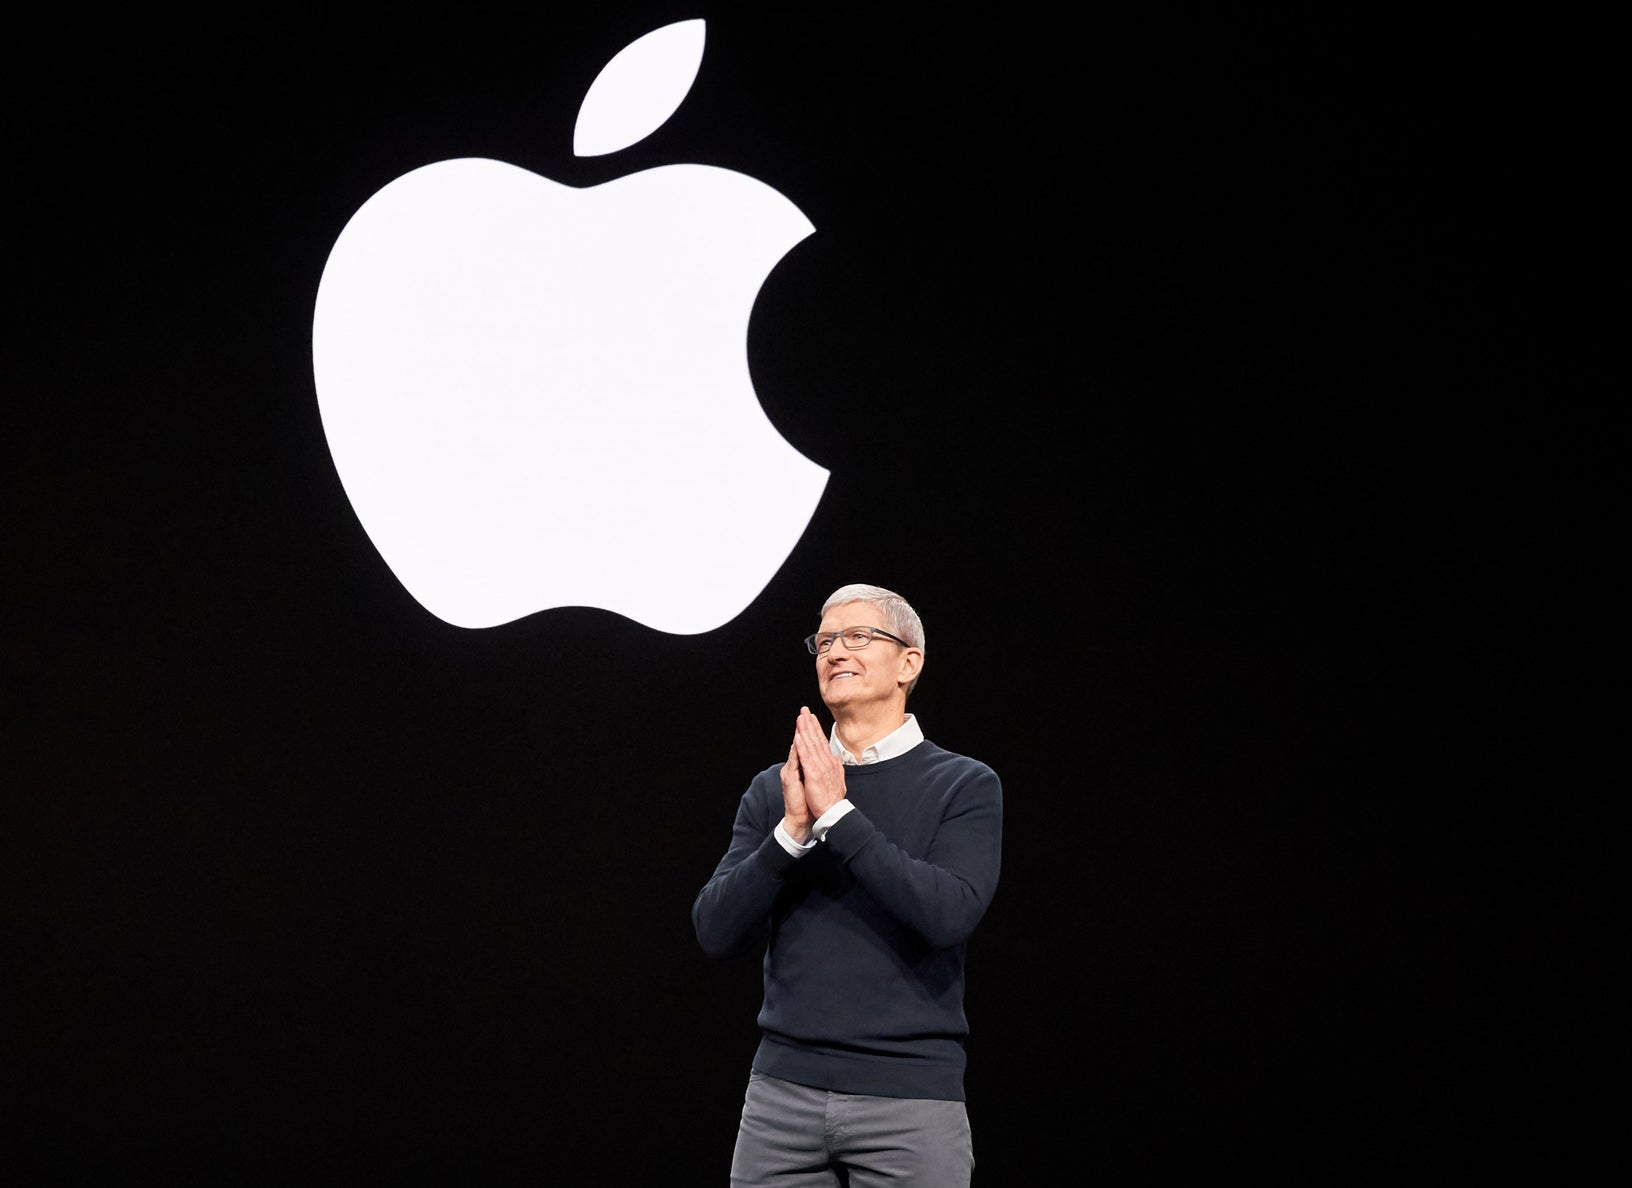 Apple's Services Business Could Be Worth $650 Billion by Next Year | The Motley Fool